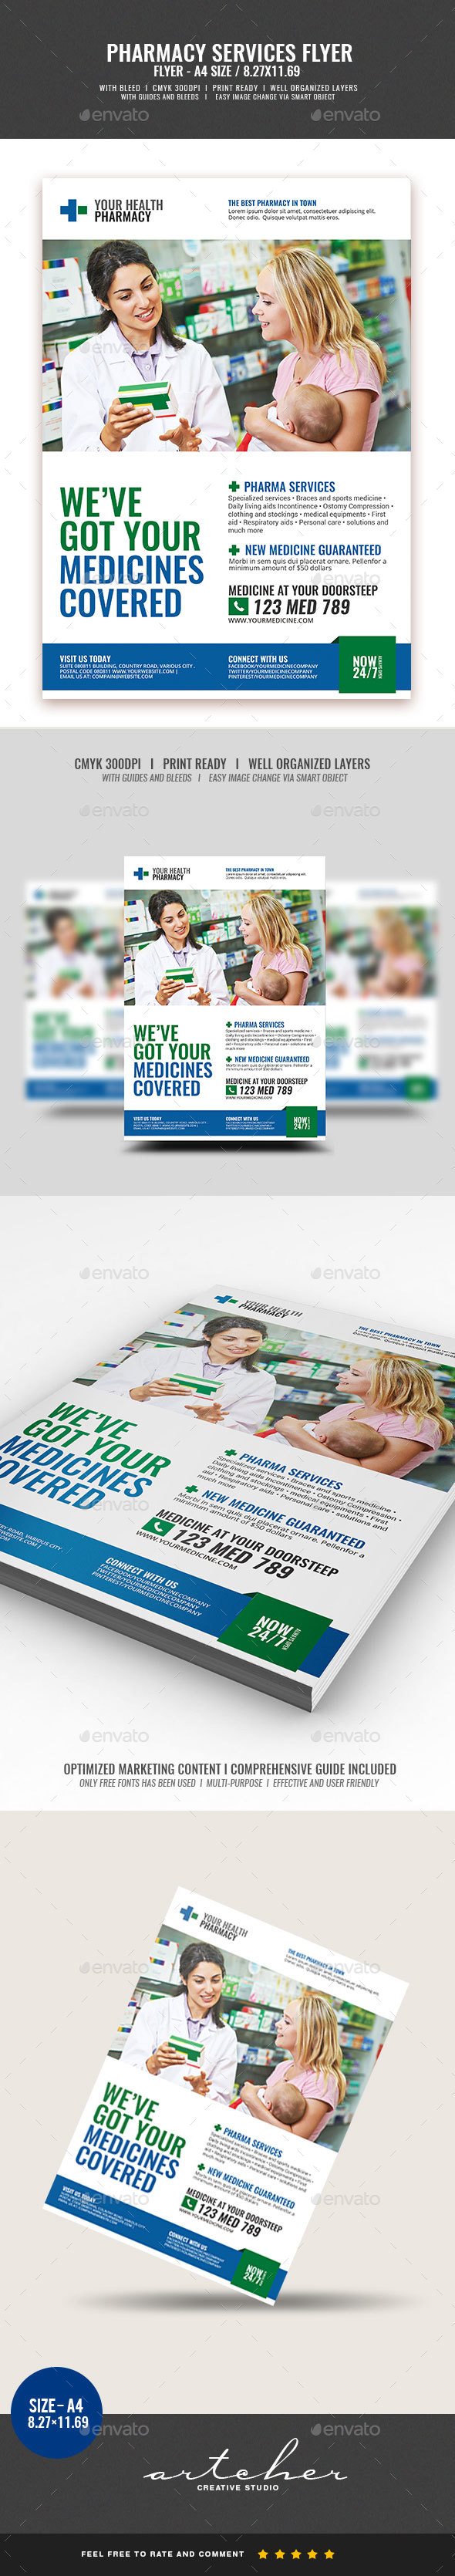 Pharmacy Services Flyer - Commerce Flyers